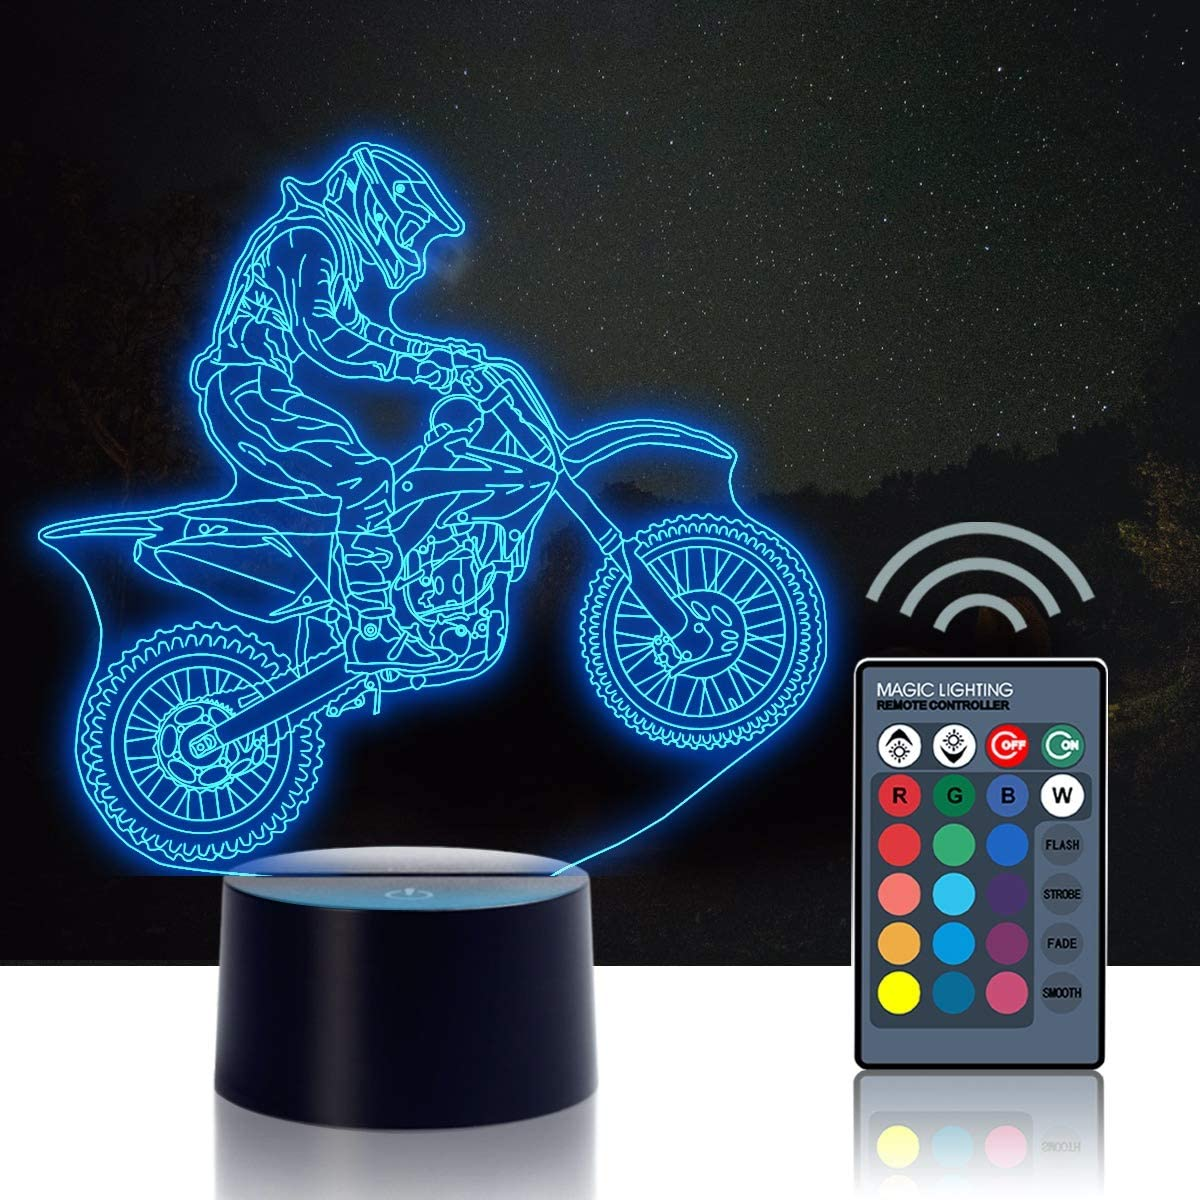 3D Night Light, Urwise Cross Country Motorcycle 3D Night Lamp, 16 Color Changing Light with Remote Control Animal Toys Bedroom Home Decor, for Boys Girls and Kids Birthday Christmas Gift 1001